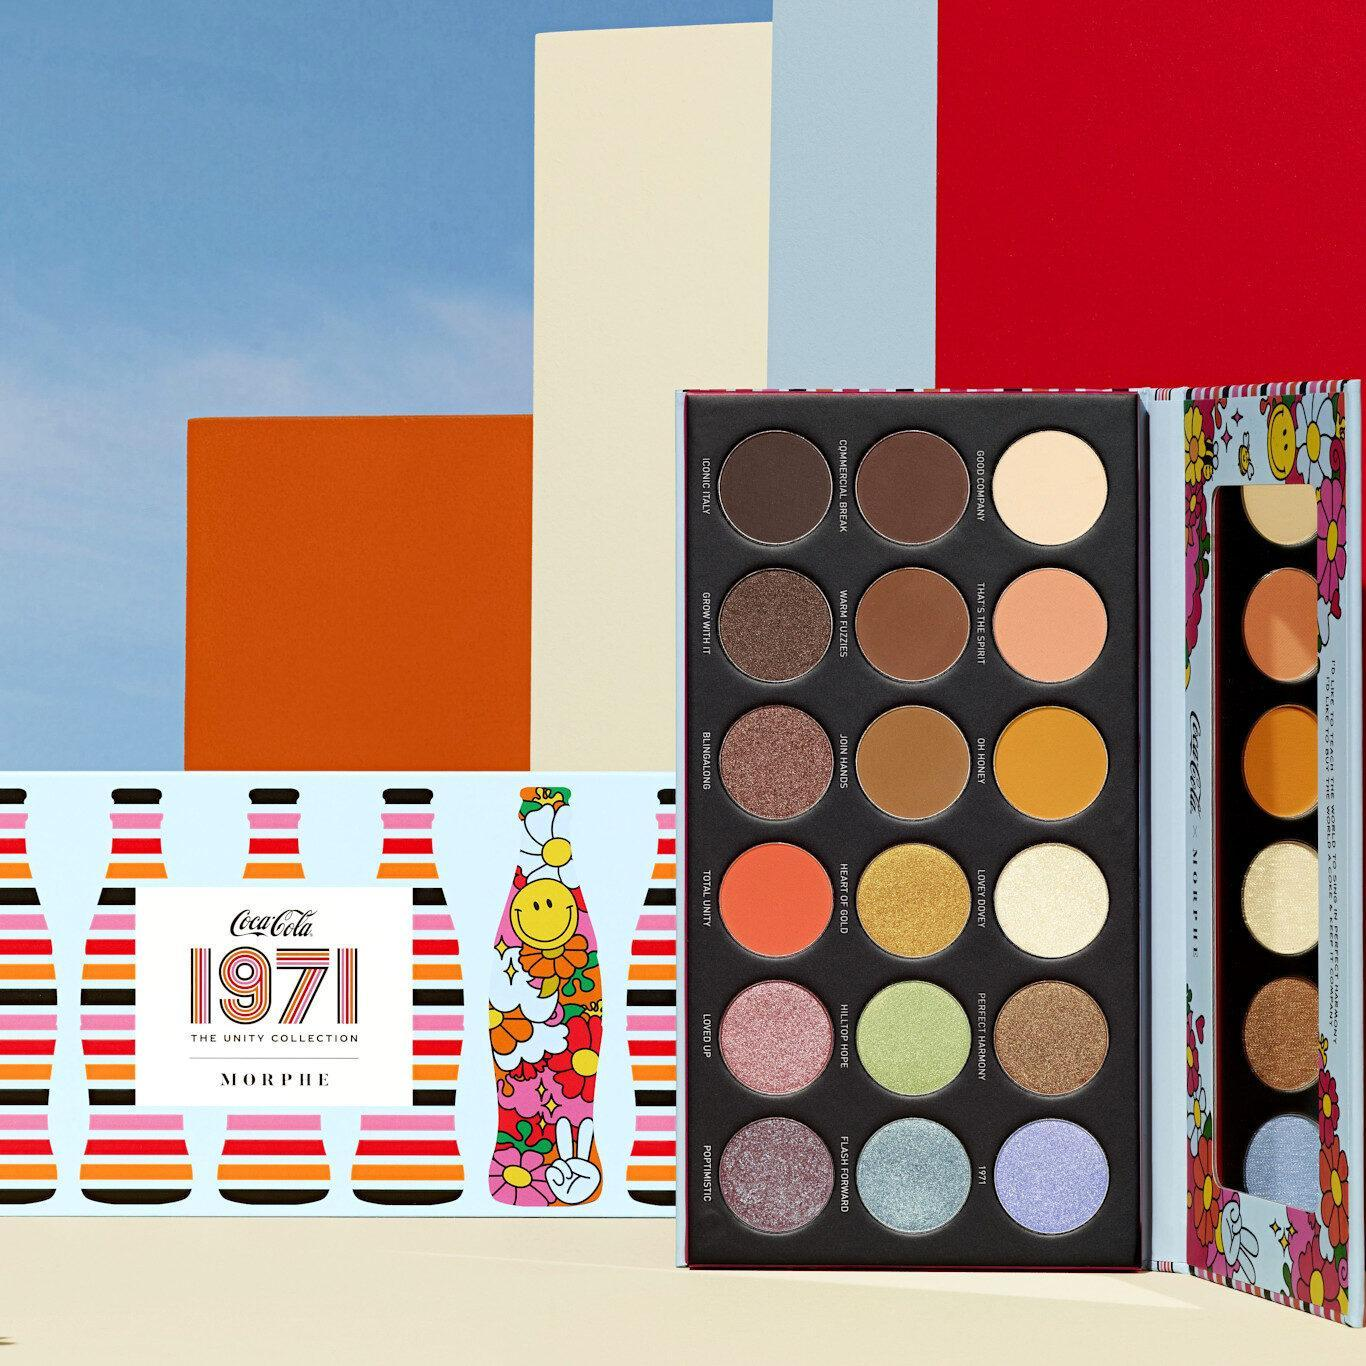 Morphe x Coca Cola 1971 Unity Collection Awe Together Artistry Eyeshadow Palette Open & Closed Promo